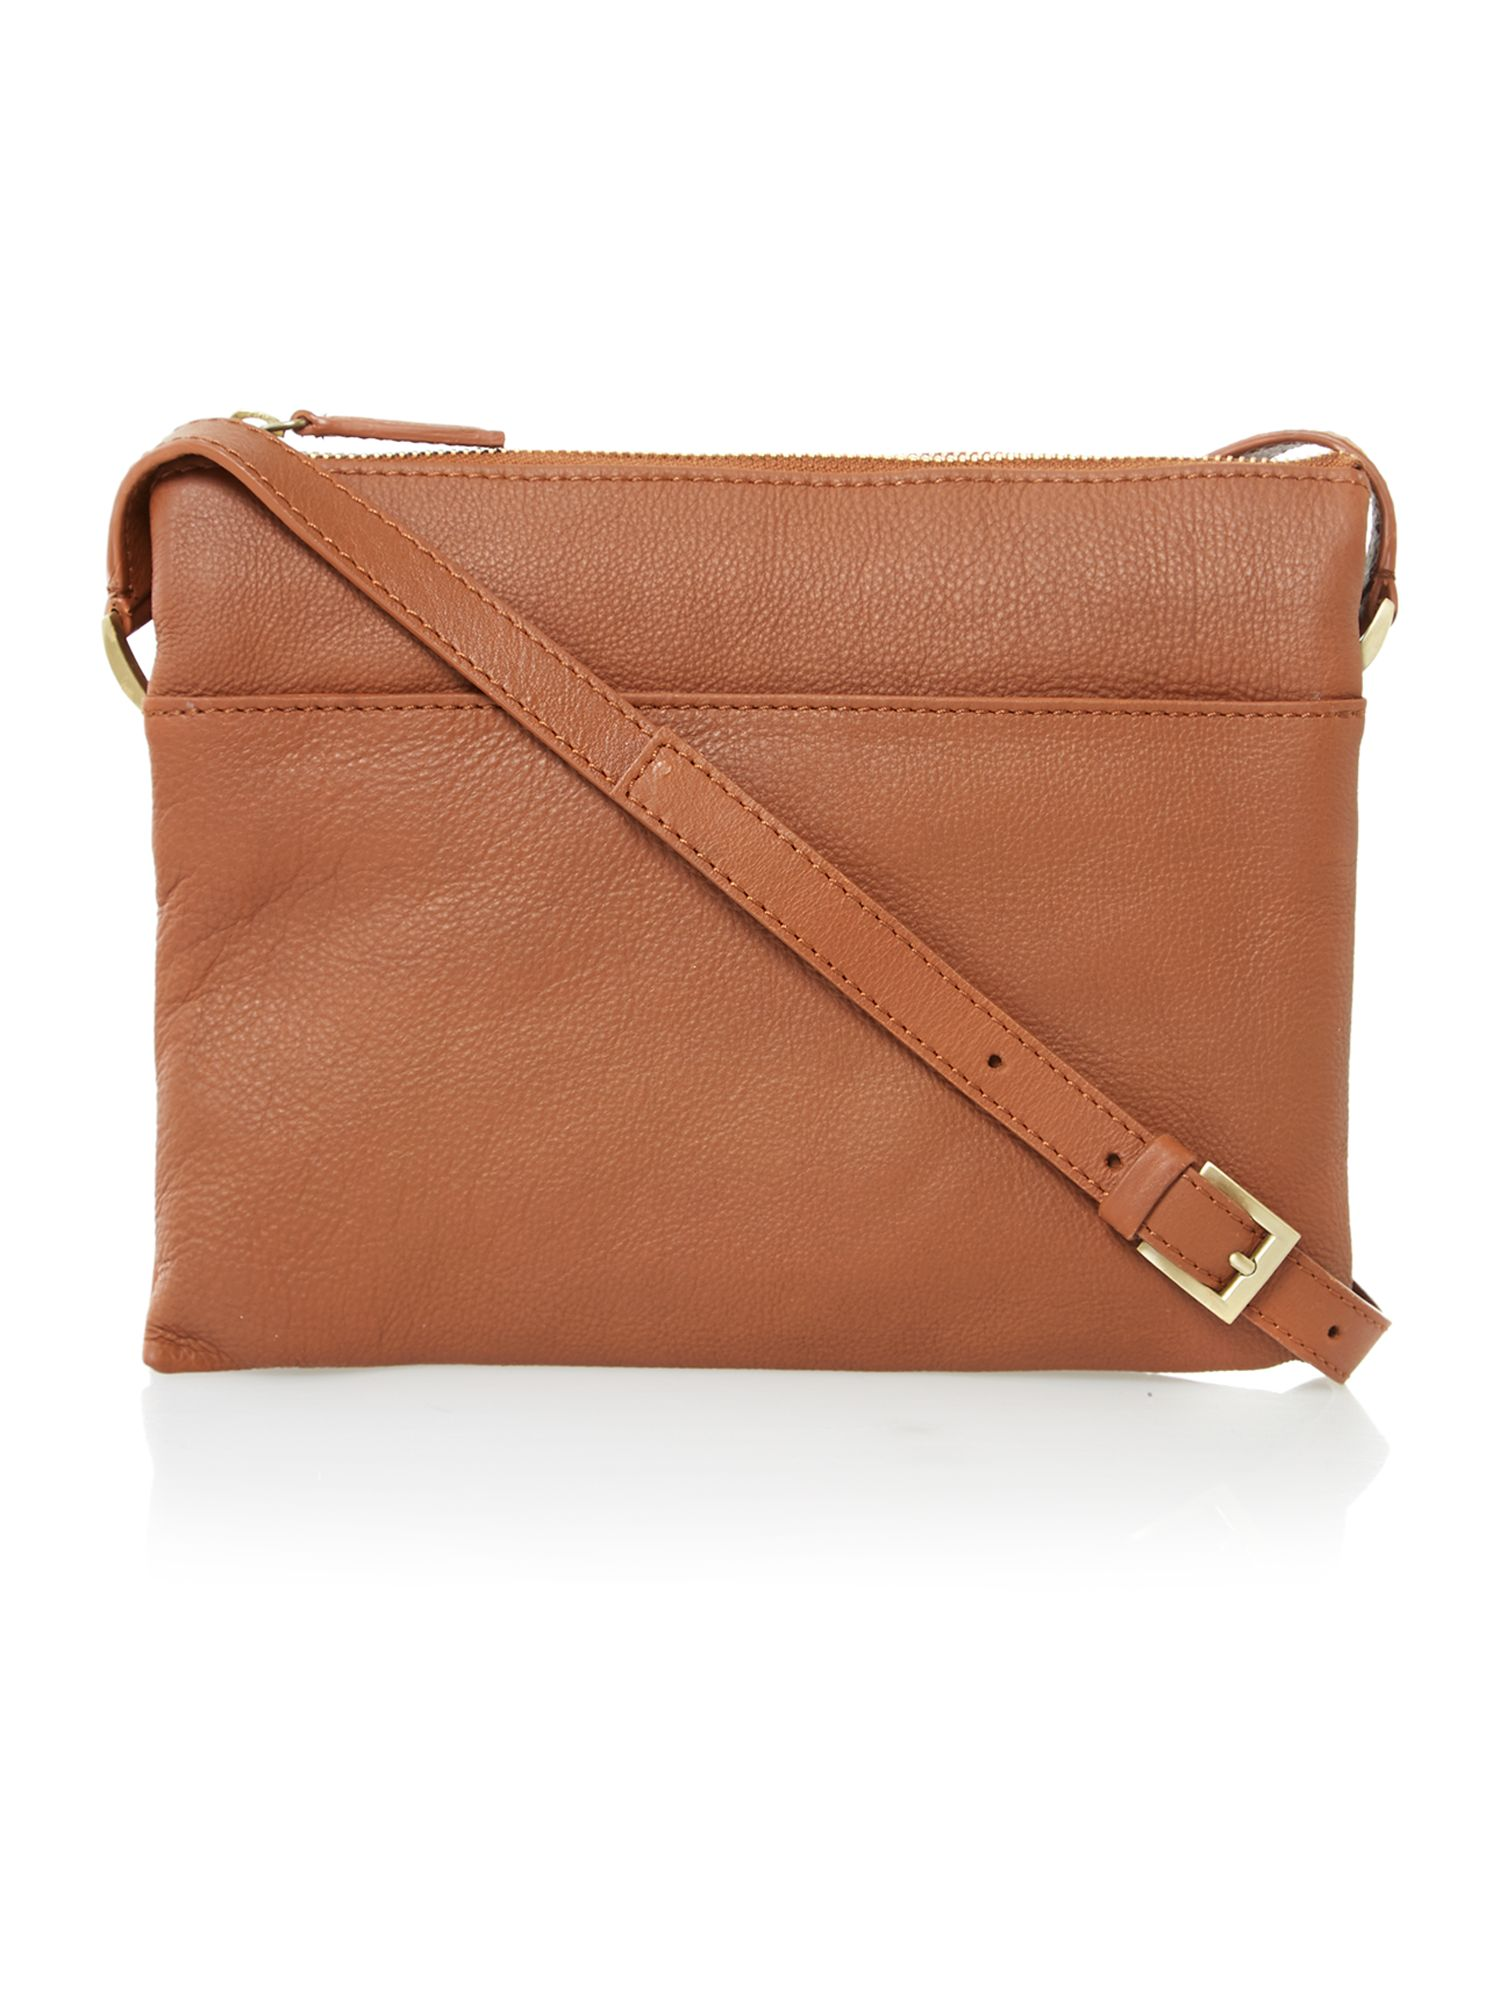 Norfolk cross body handbags